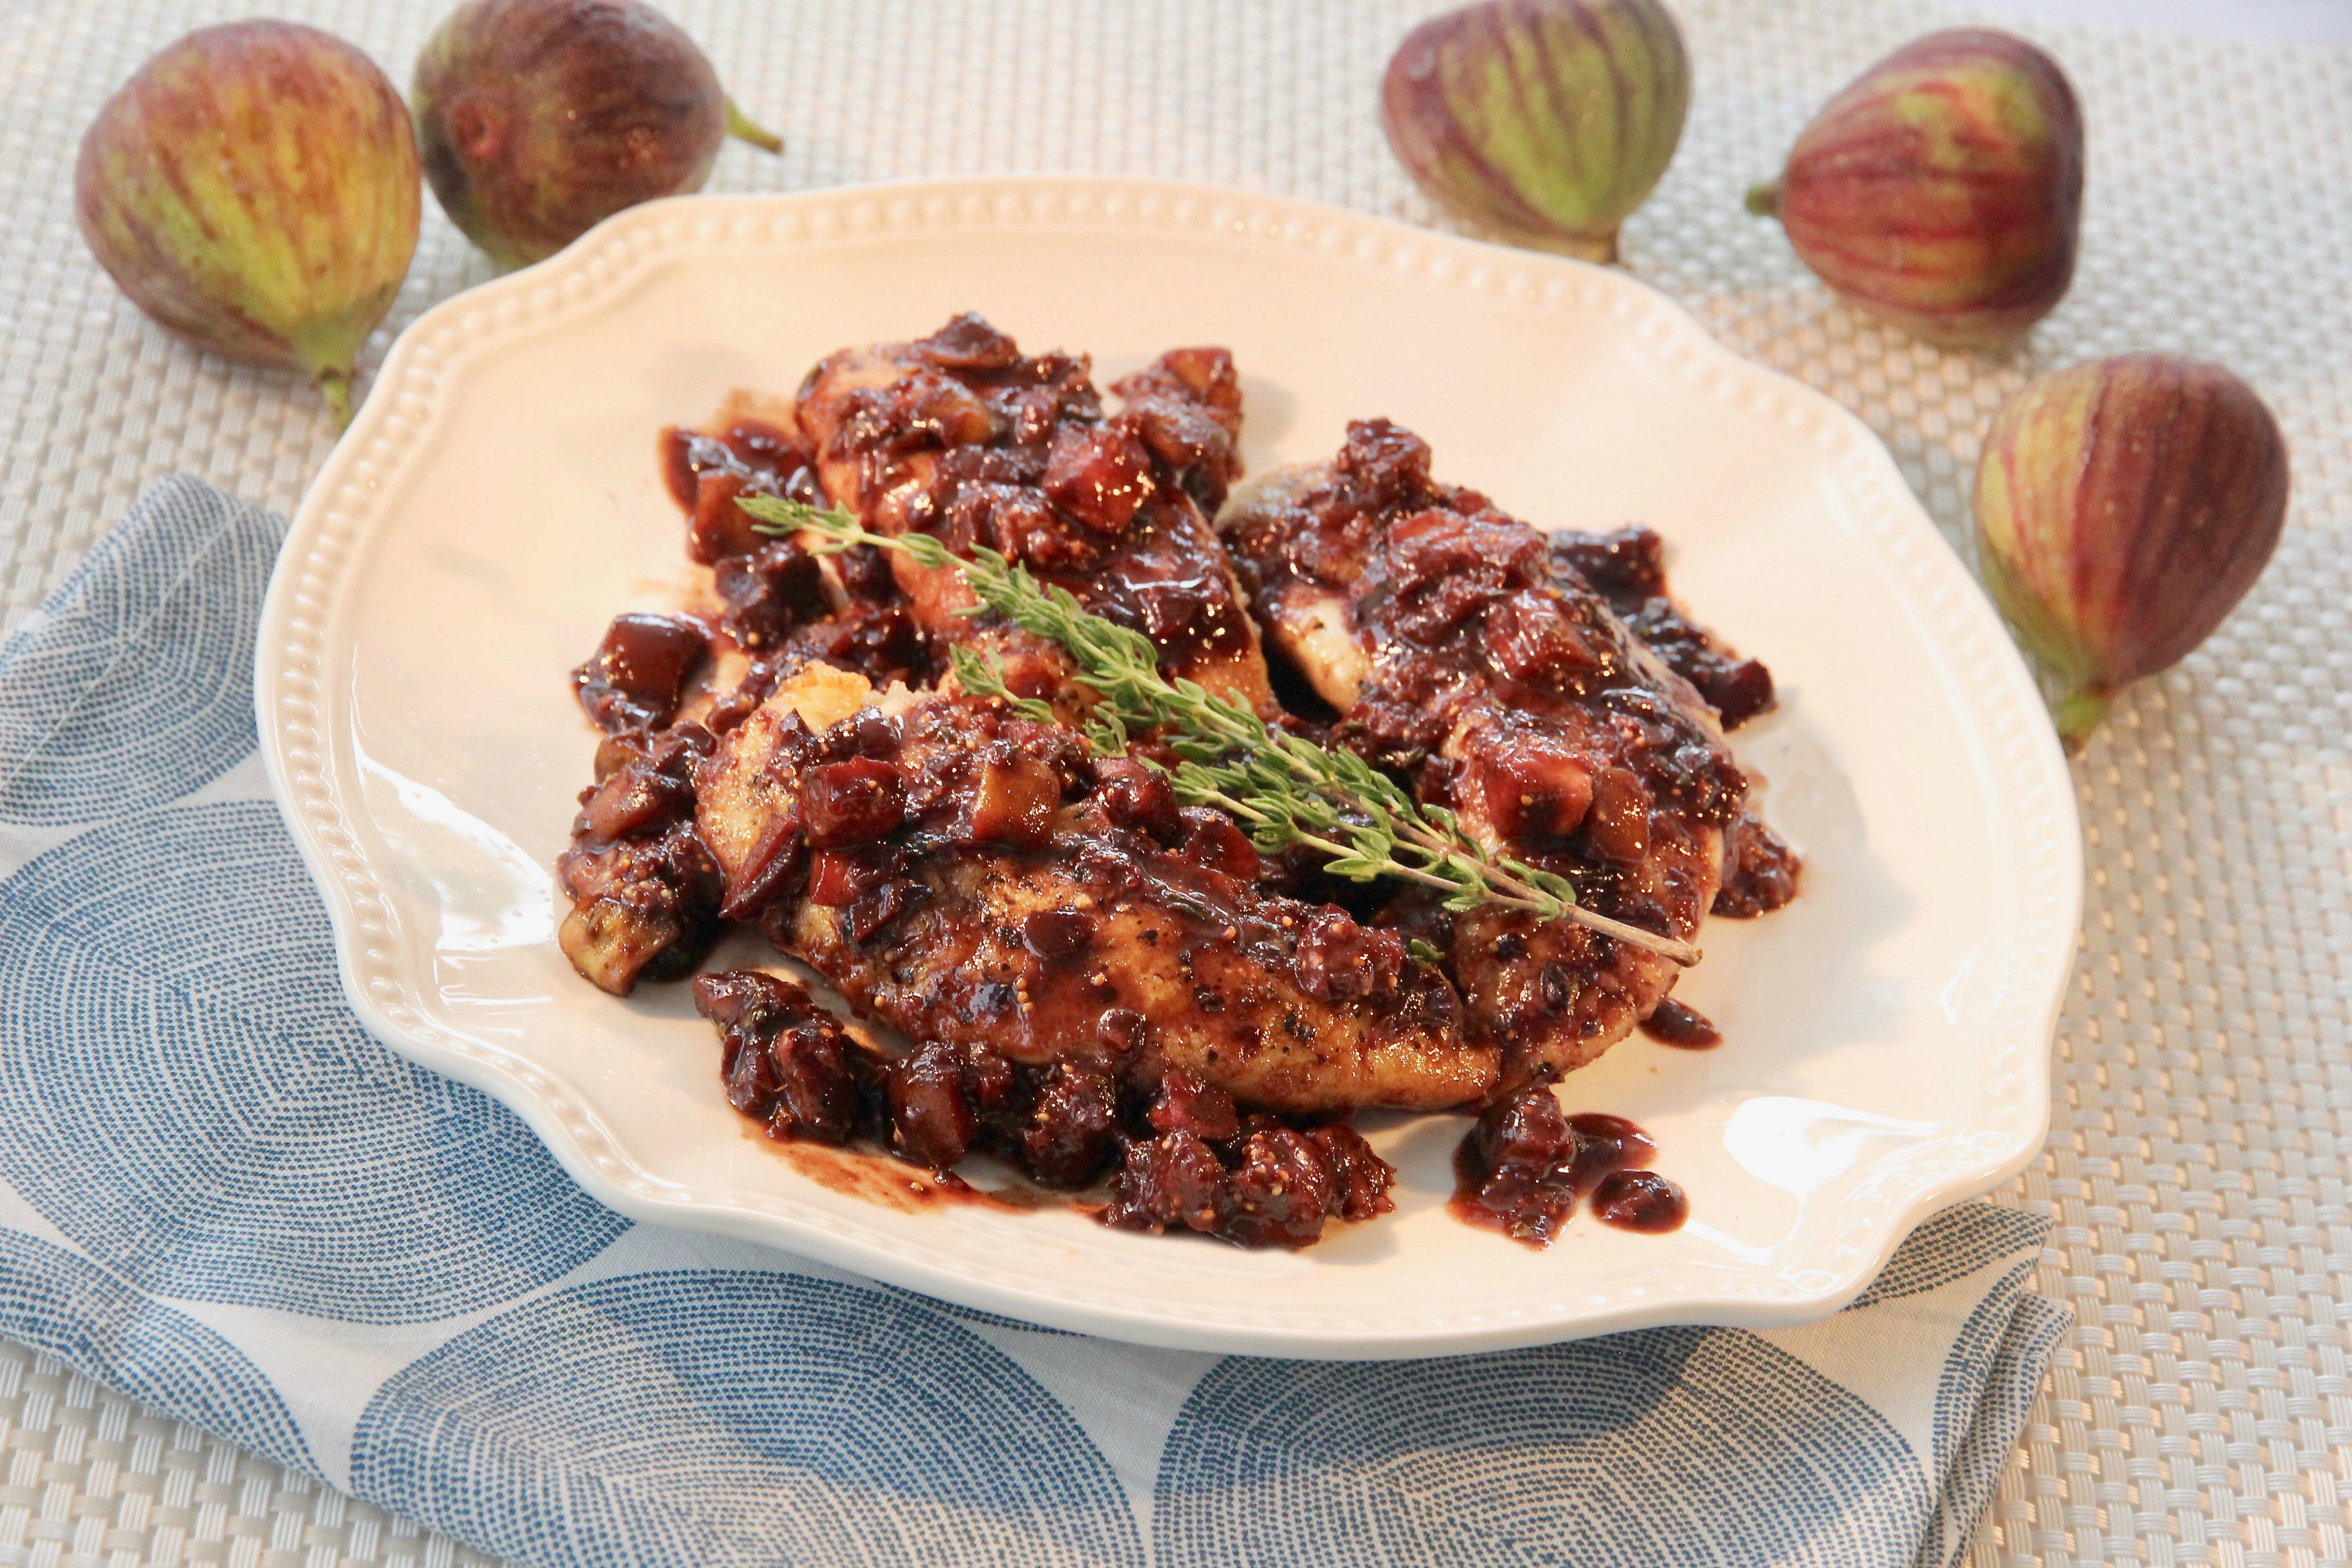 """Boneless, skinless chicken breasts sizzle in the pan with a wine, balsamic vinegar, shallot, and fig sauce, kicked up with a little Dijon and a touch of honey. lutzflcat says, """"The balsamic vinegar is a nice contrast to the sweet figs which add great texture, and the thyme provides just a bit of savoriness to this sweet and rich sauce."""" Dinner's ready in about 35 minutes."""